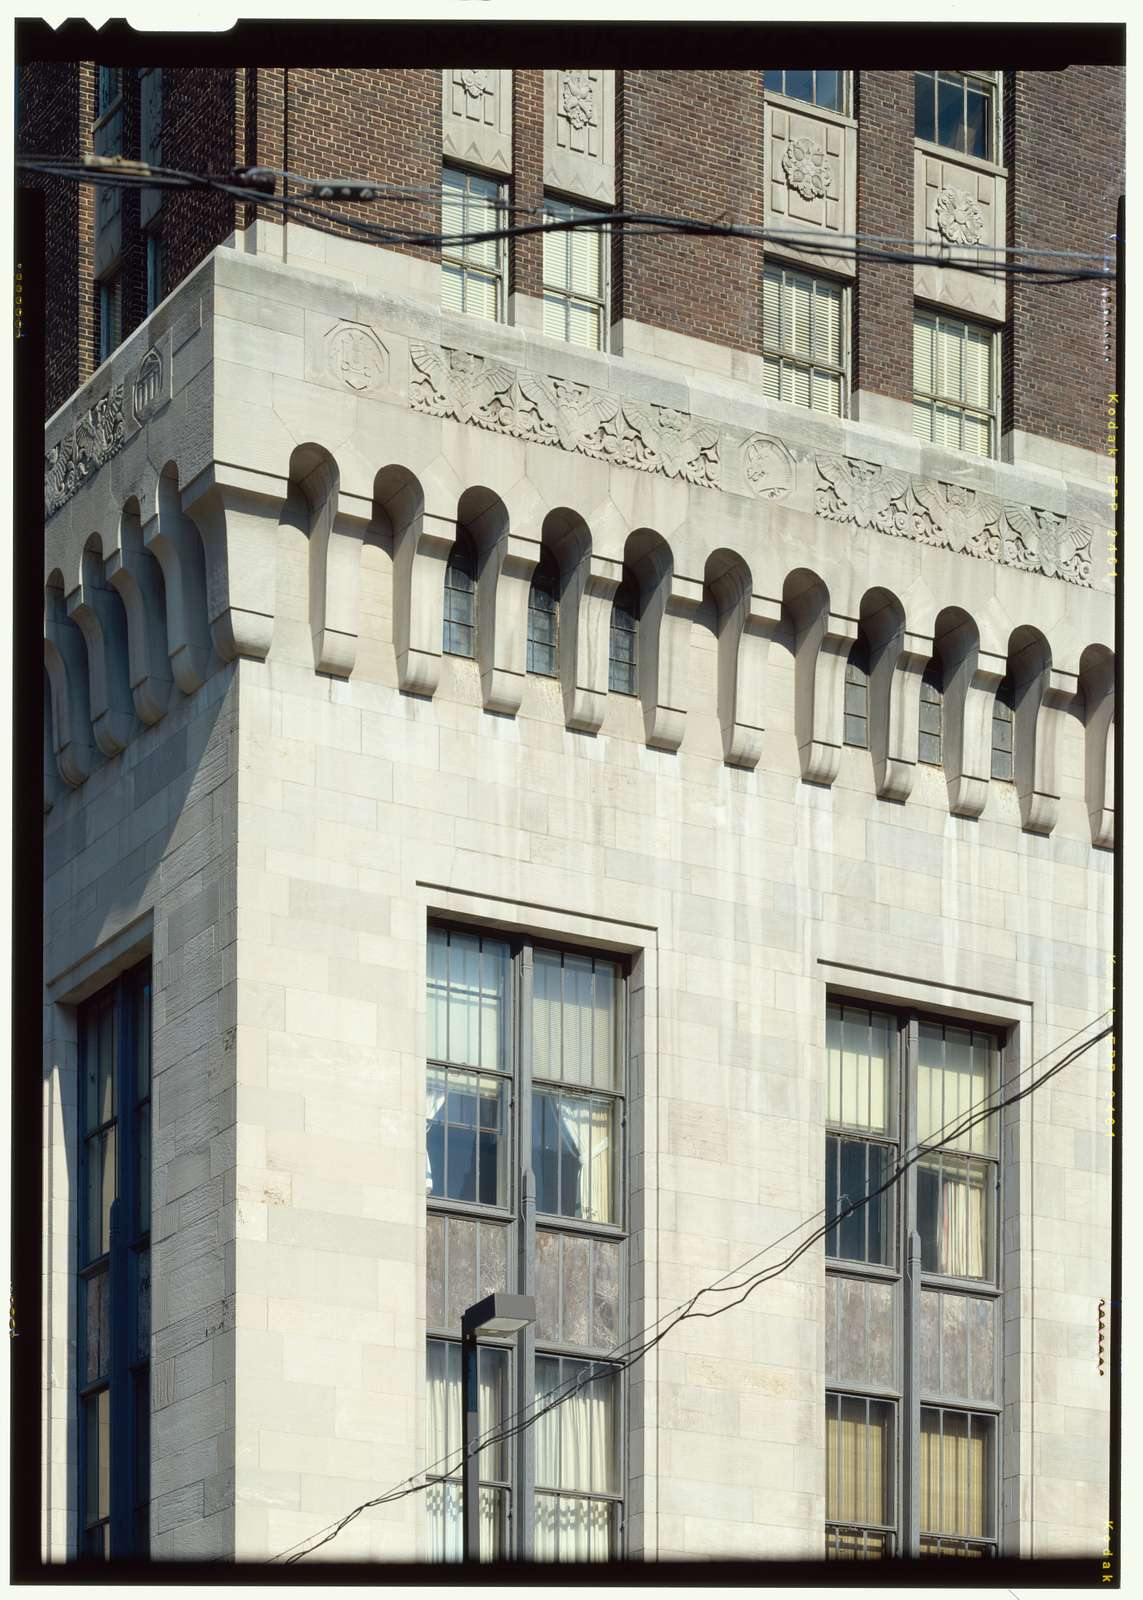 Baltimore Trust Company Building, 10 Light Street, Baltimore, Independent City, MD